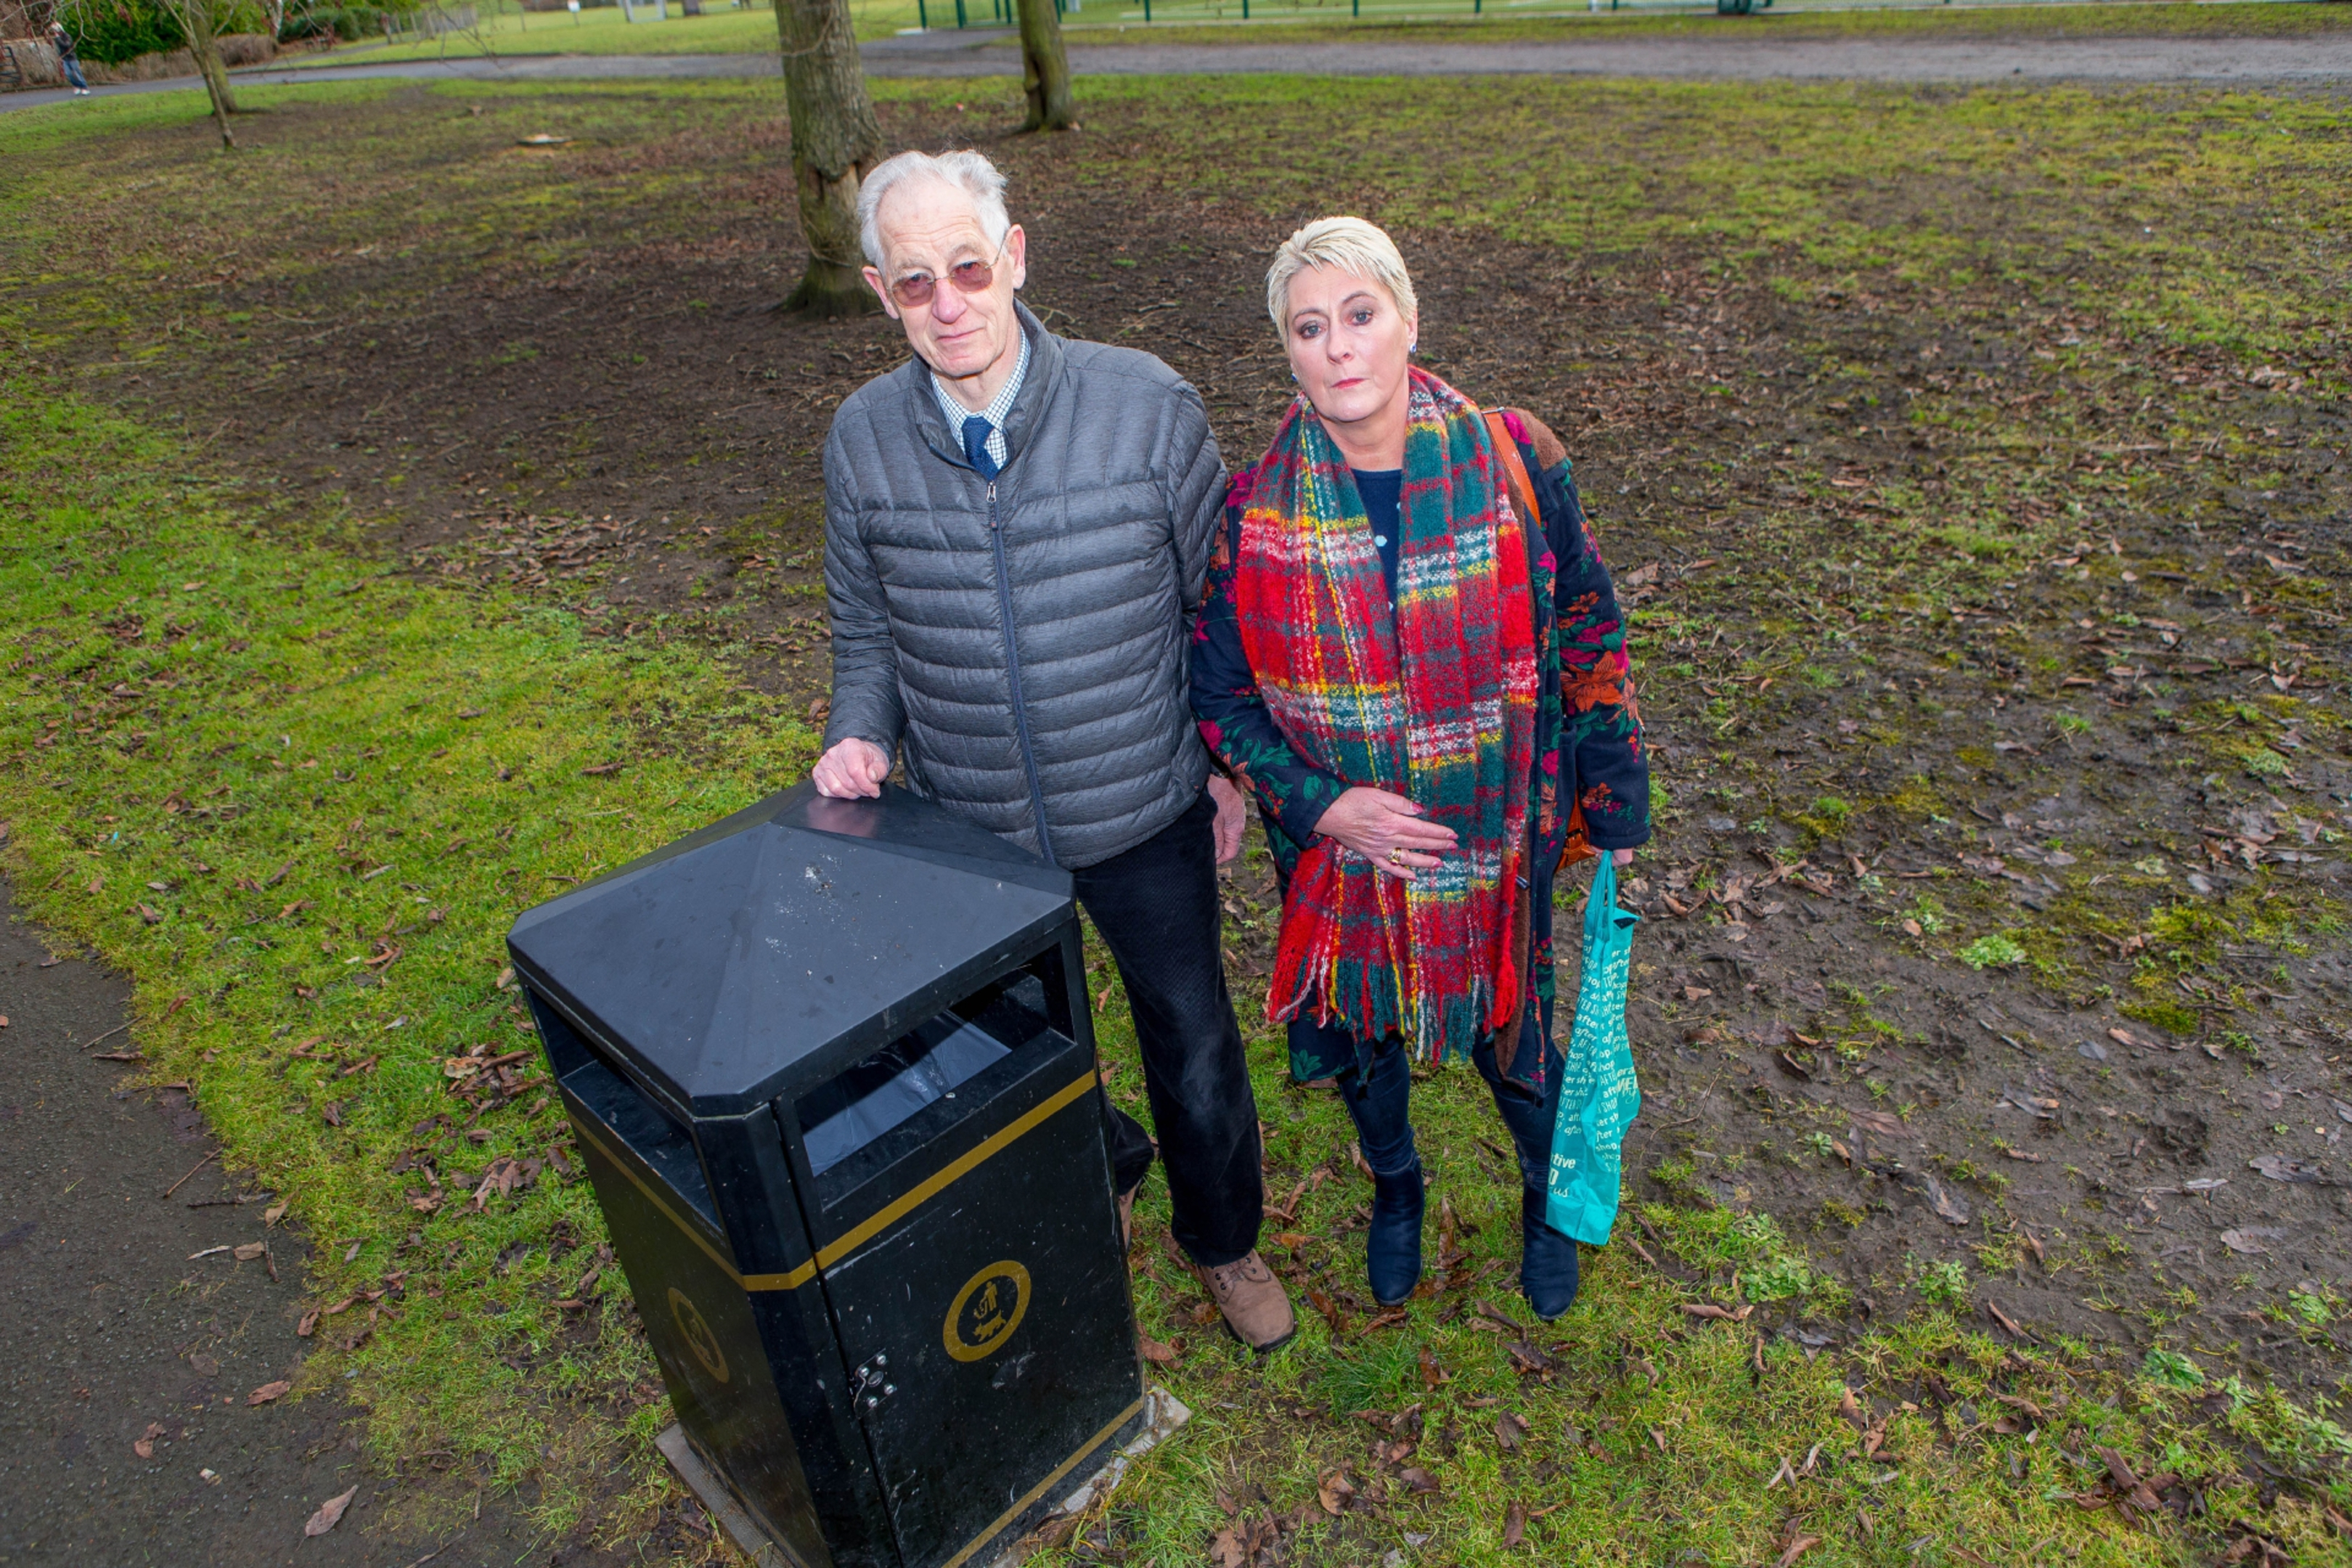 Community Council secretary David Taylor with councillor Rosemary Liewald at one of the newly installed multi-use bins in the park.